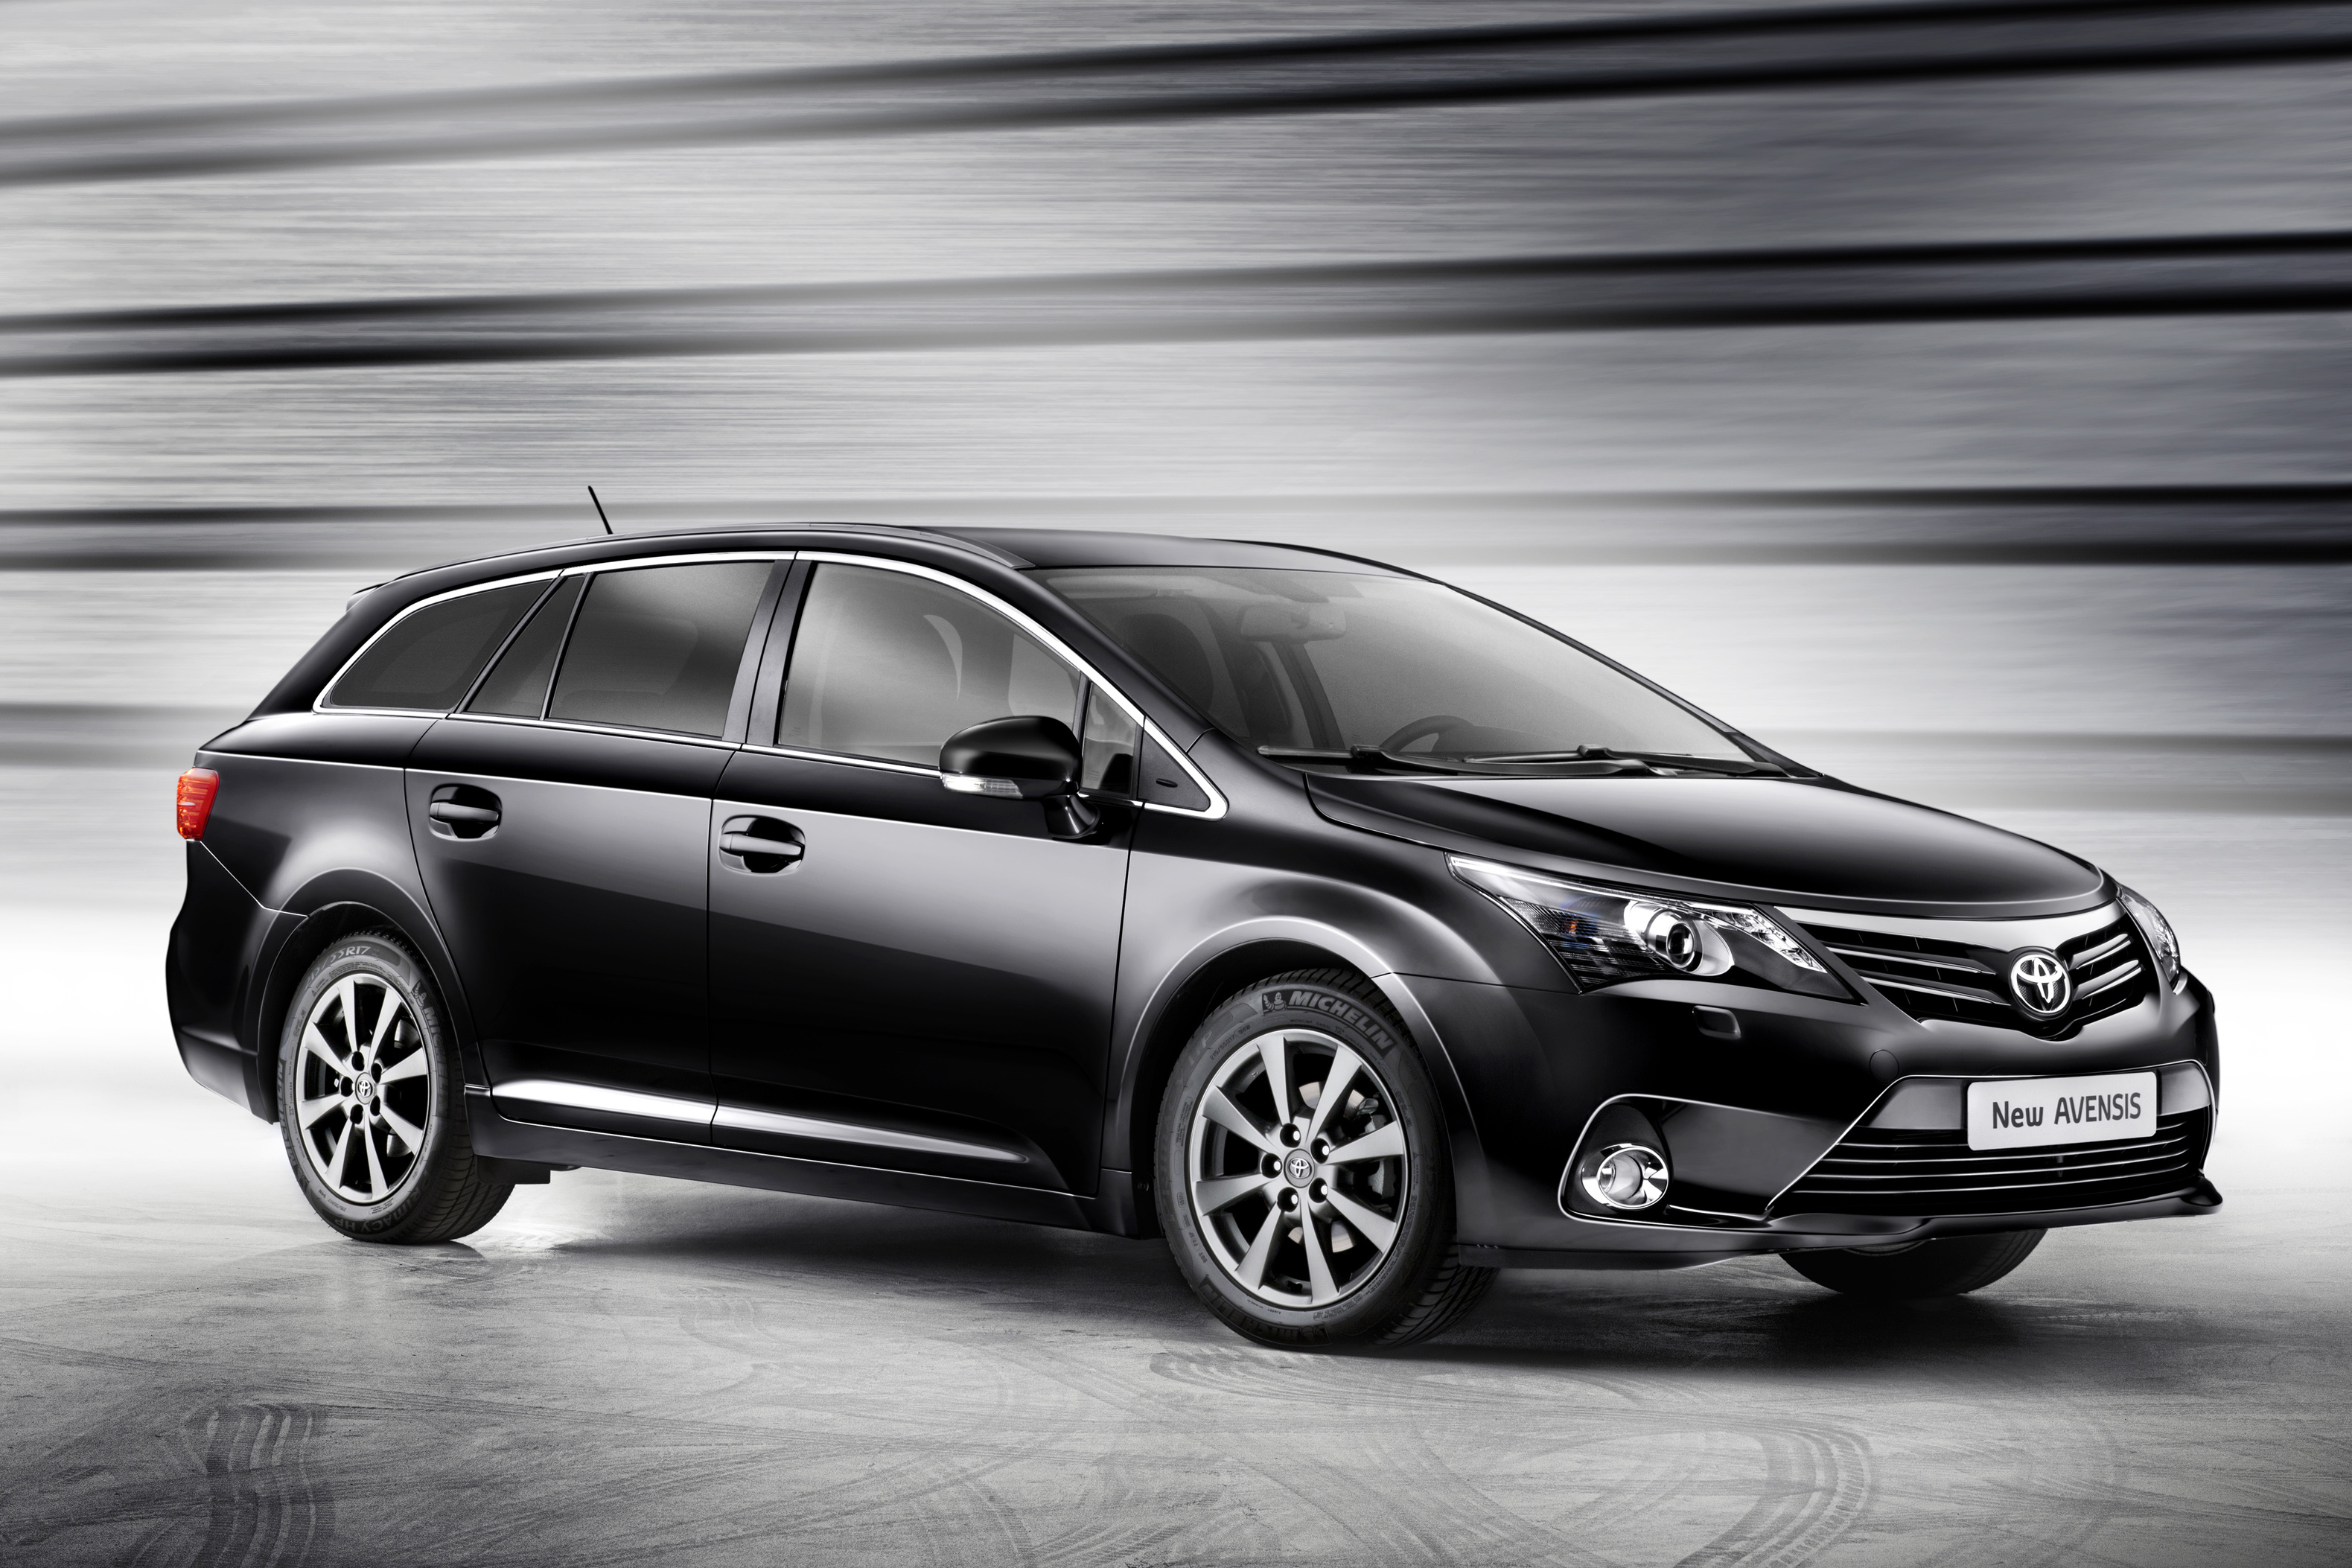 2011 toyota avensis photos informations articles. Black Bedroom Furniture Sets. Home Design Ideas